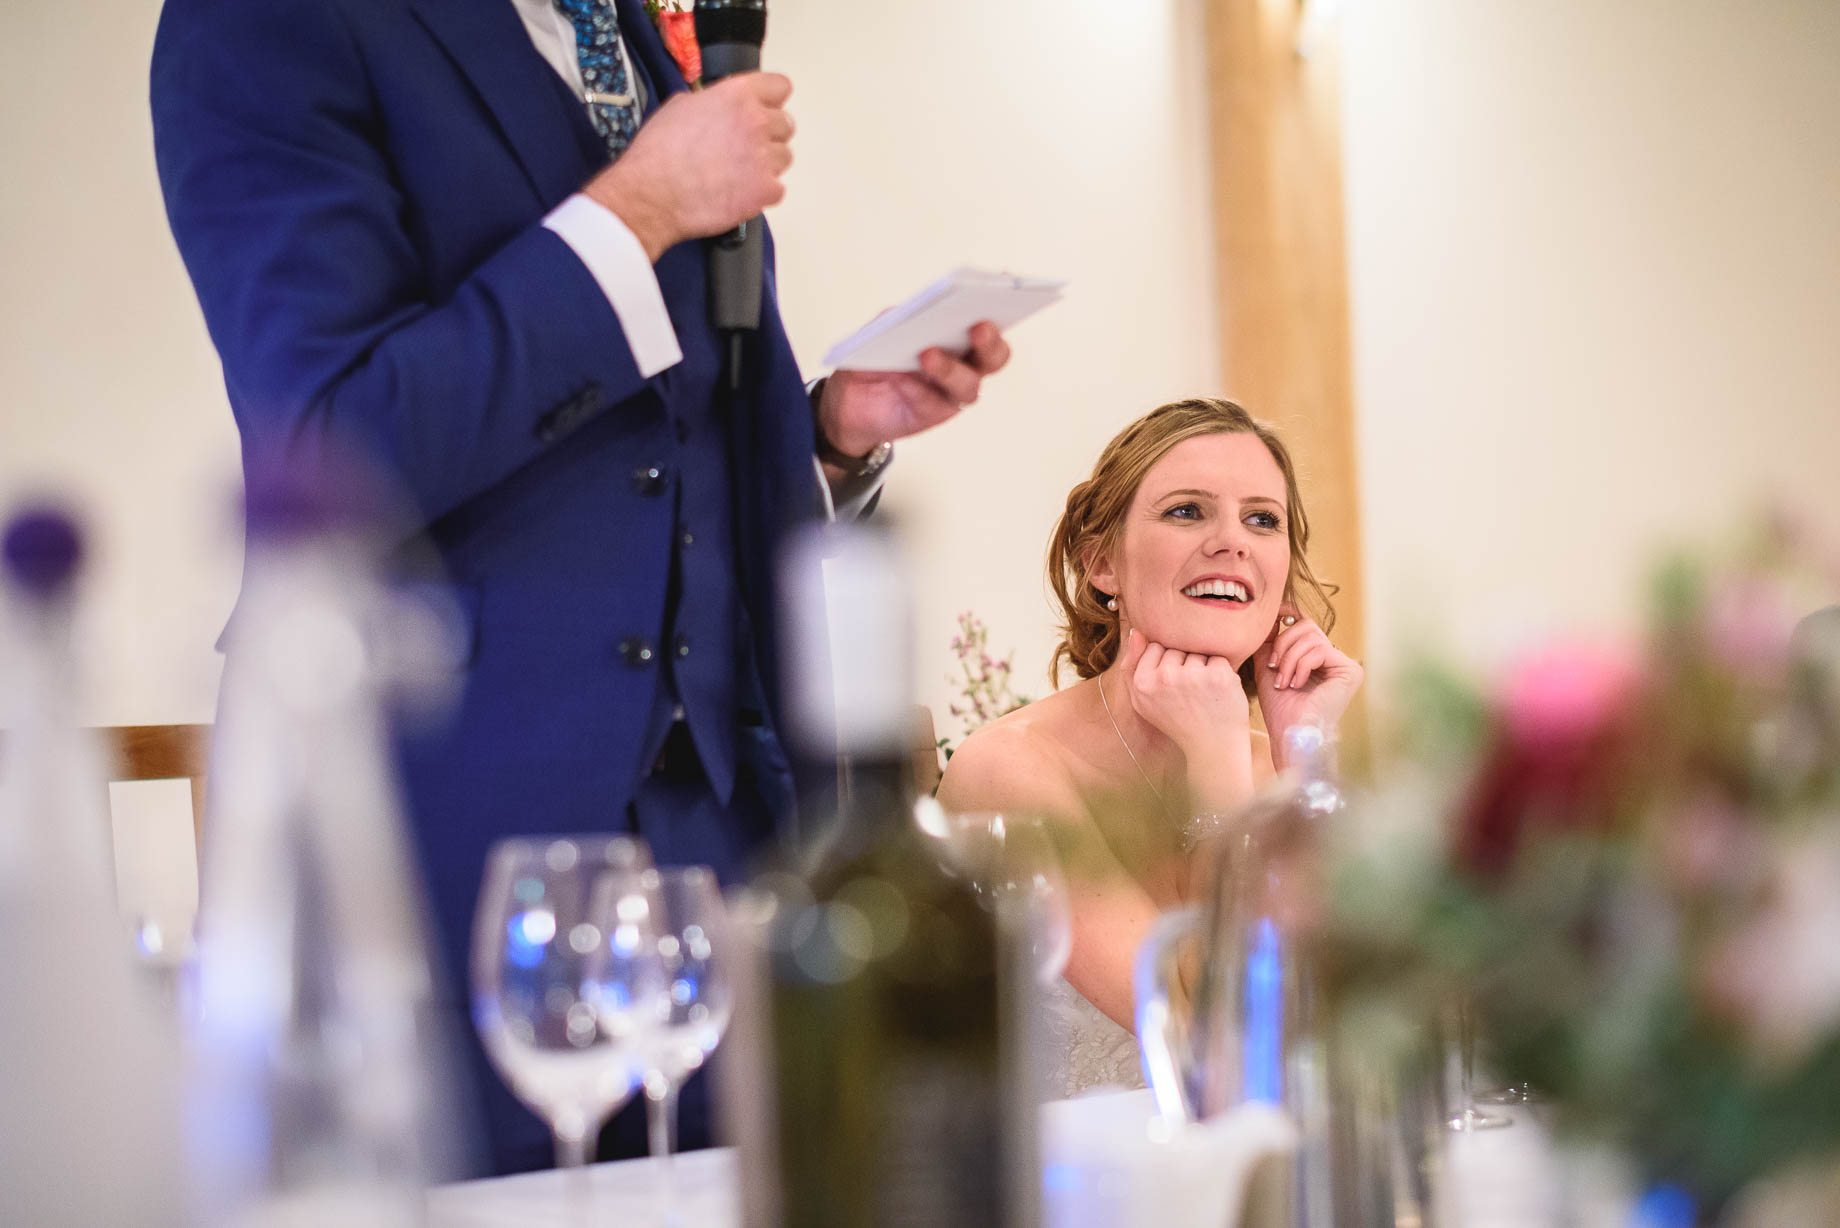 Rivervale Barn wedding photography by Guy Collier - Claire and Simon (119 of 133)